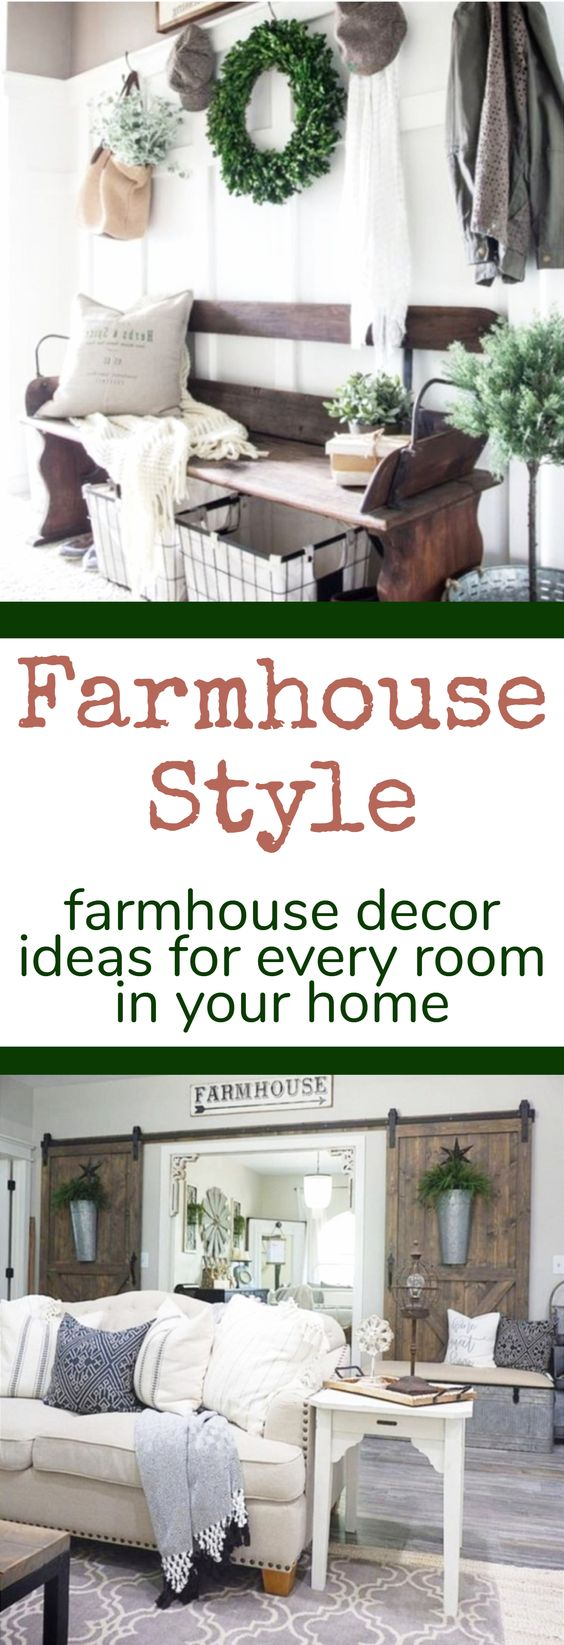 Farmhouse style decorating ideas and DIY Farmhouse room decor for every room in your home.  #farmhousedecorating #rusticfarmhouse #diydecor #homedecorideas #diyhomedecor #farmhousestyle #farmhousedecorideas #decoratingideas #kitchenideas #livingroomideas #bedroomideas #bathroomideas #laundryroomideas